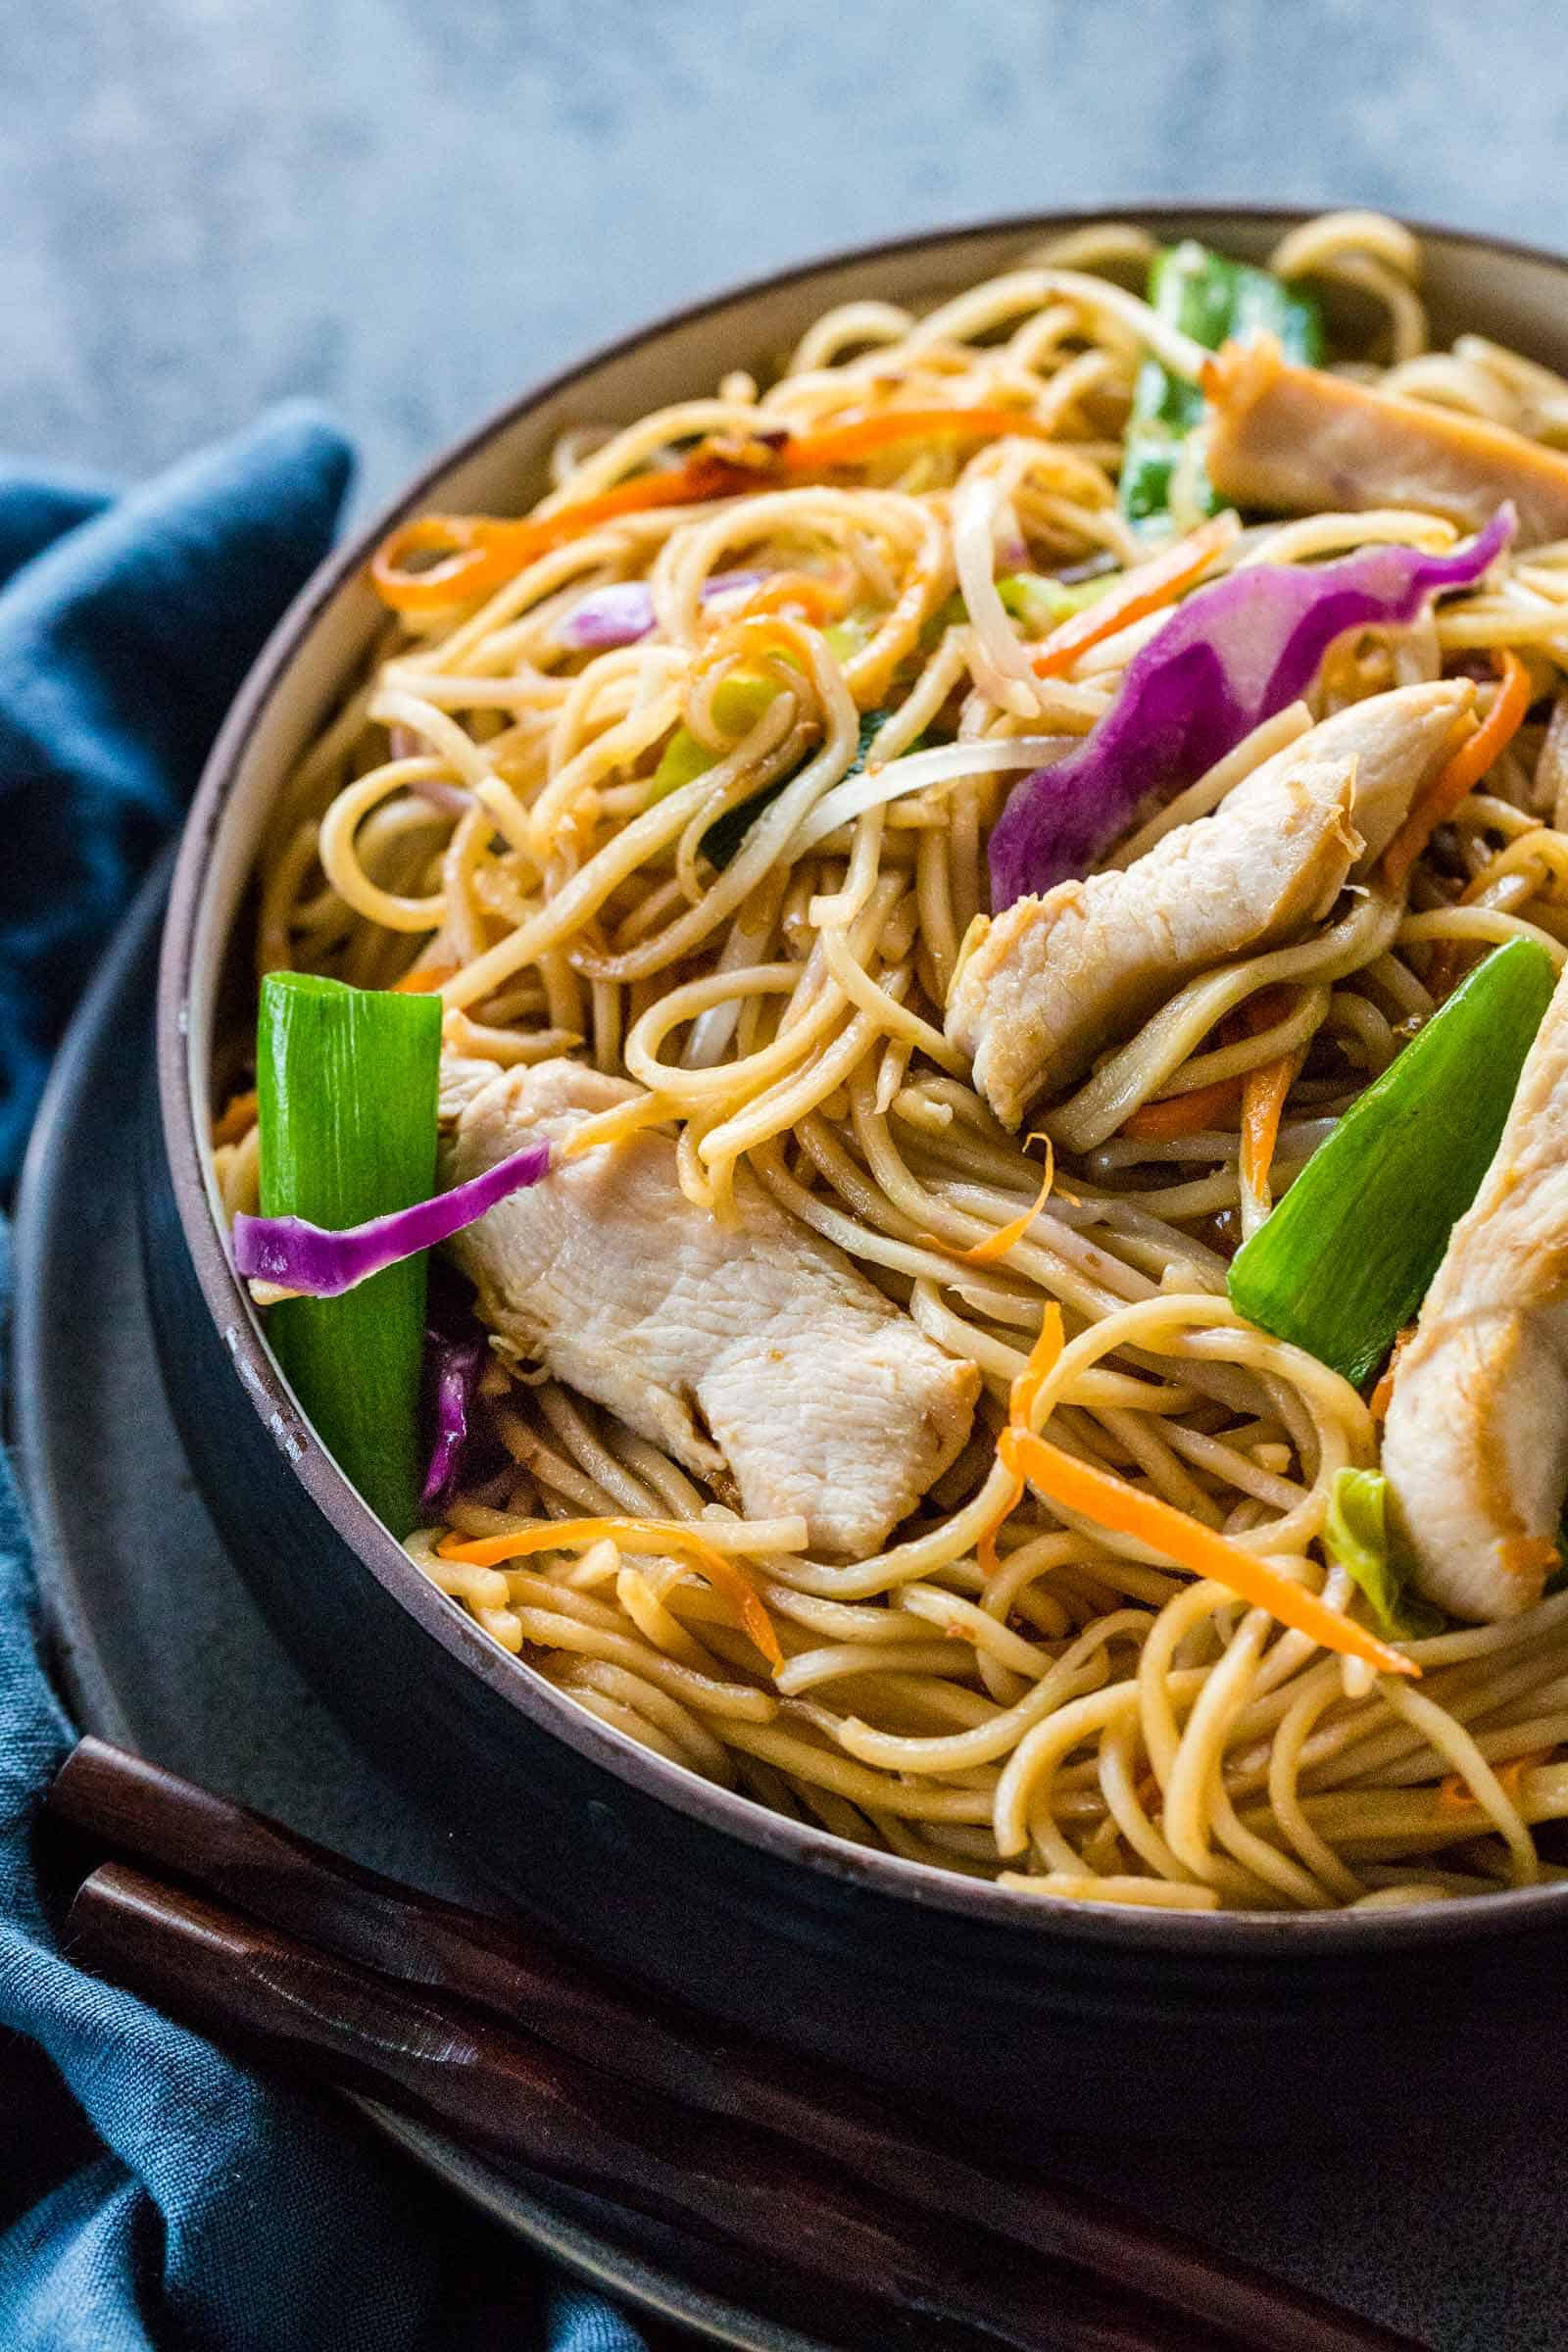 chicken chow mein served in a dark bowl